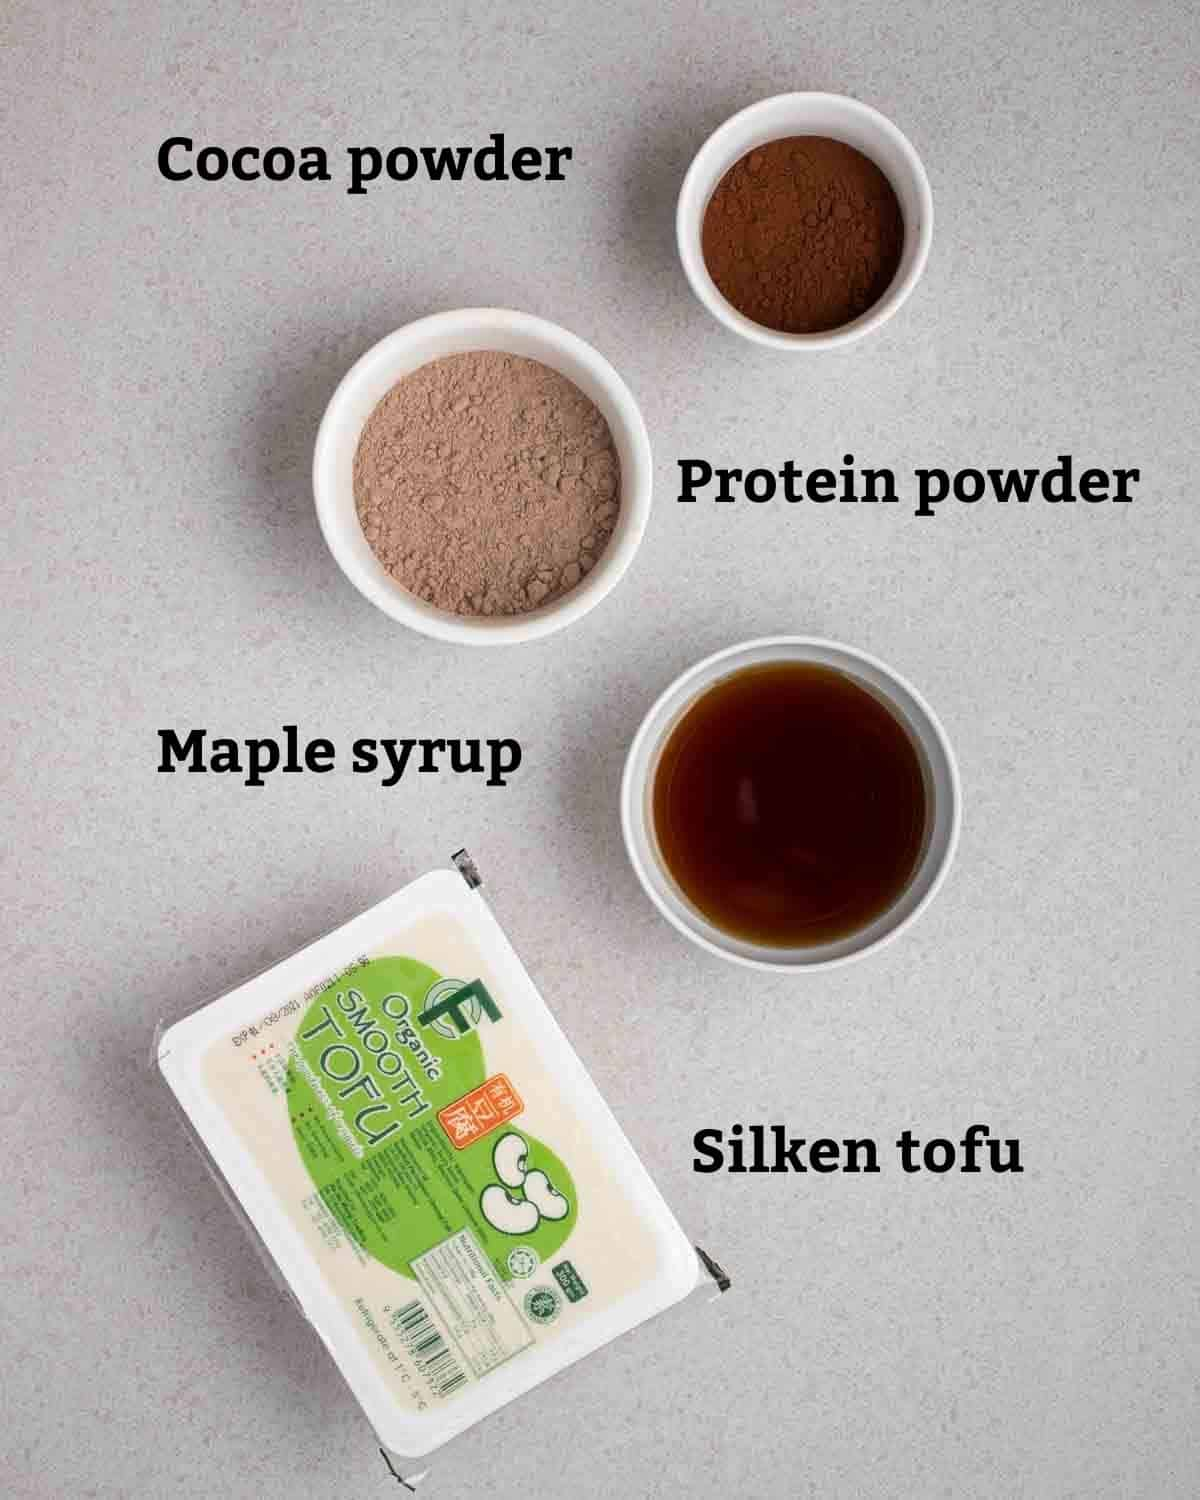 Ingredients needed like silken tofu, maple syrup, protein powder and cocoa powder.